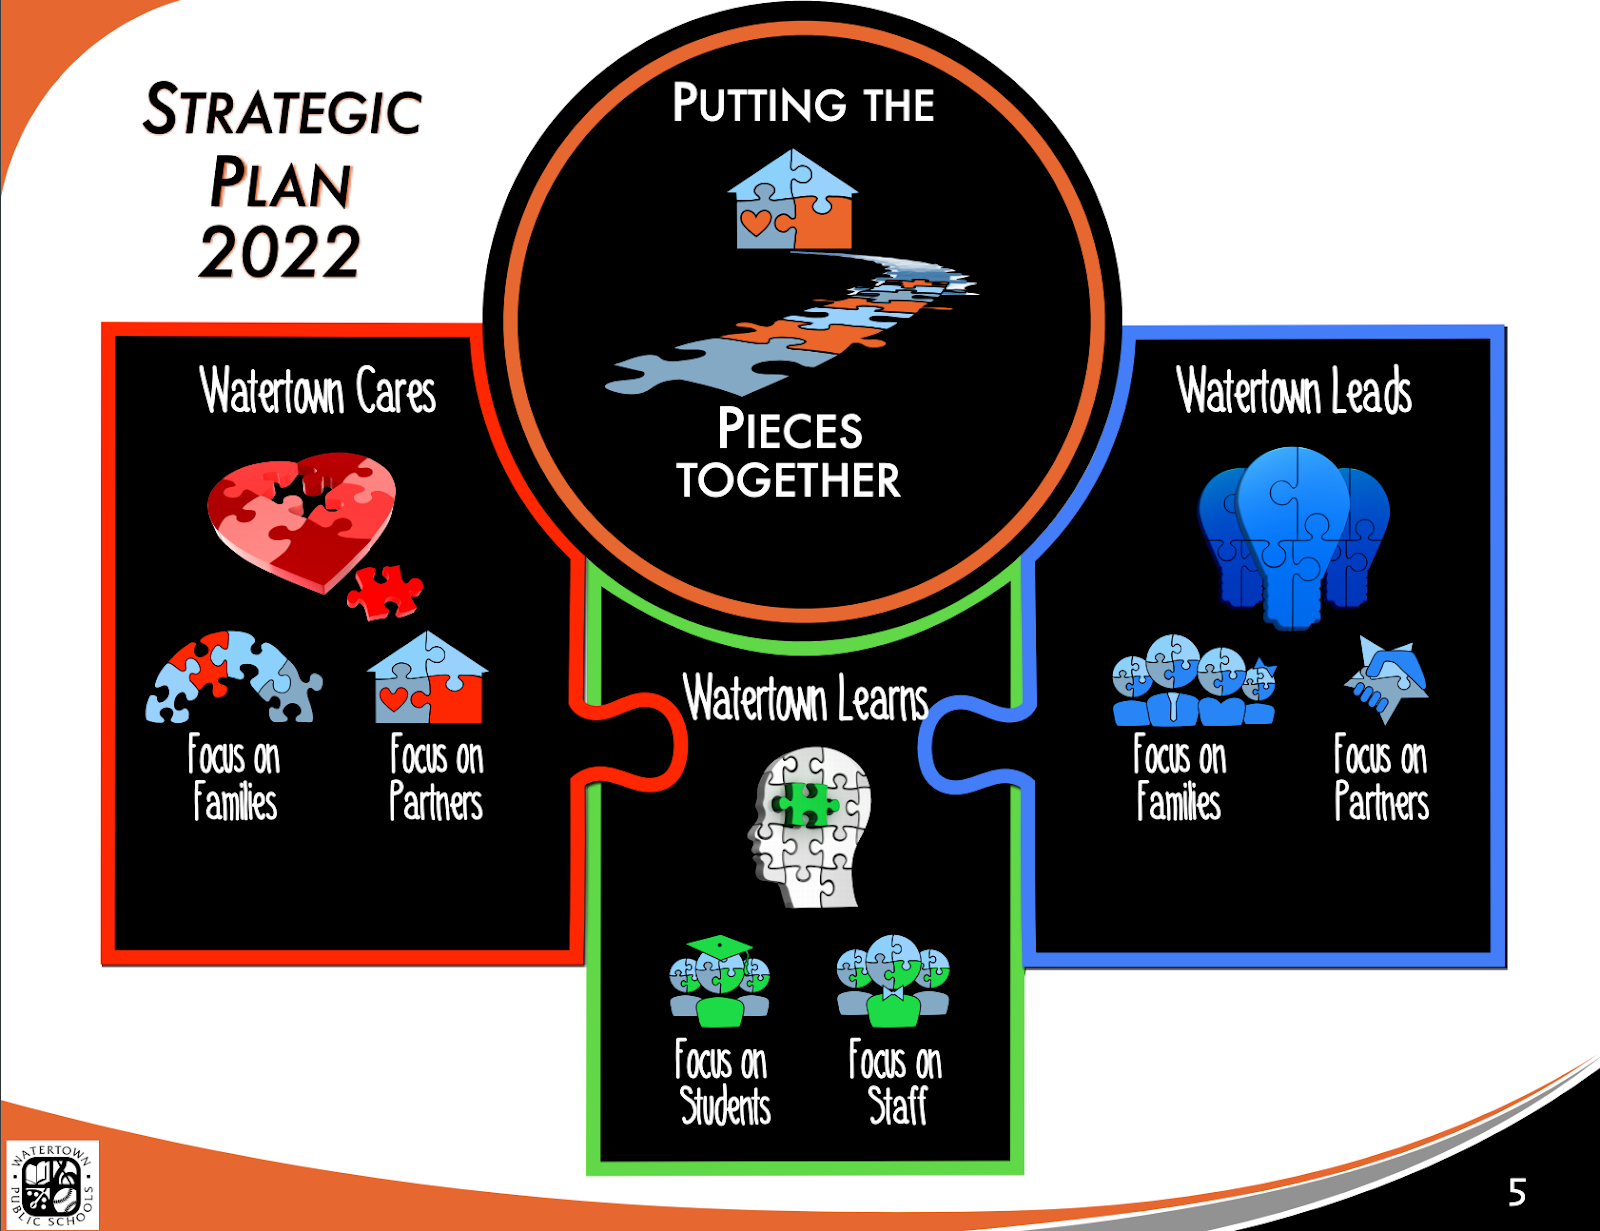 strategic plan 2022